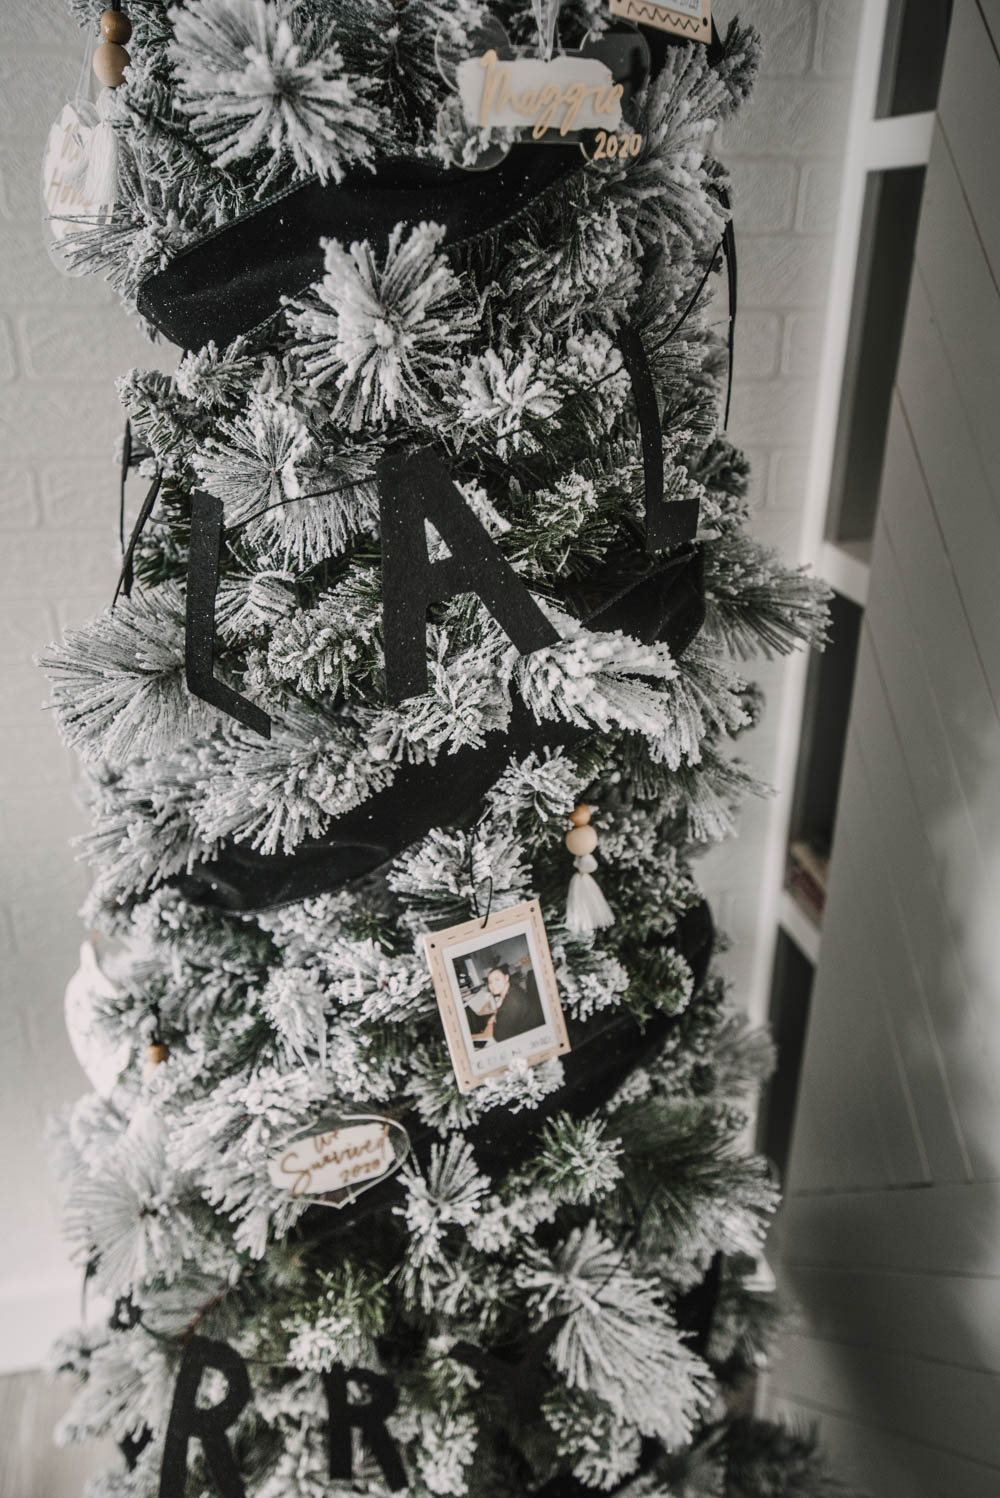 Love all the DIY ornaments on this black and white tree!